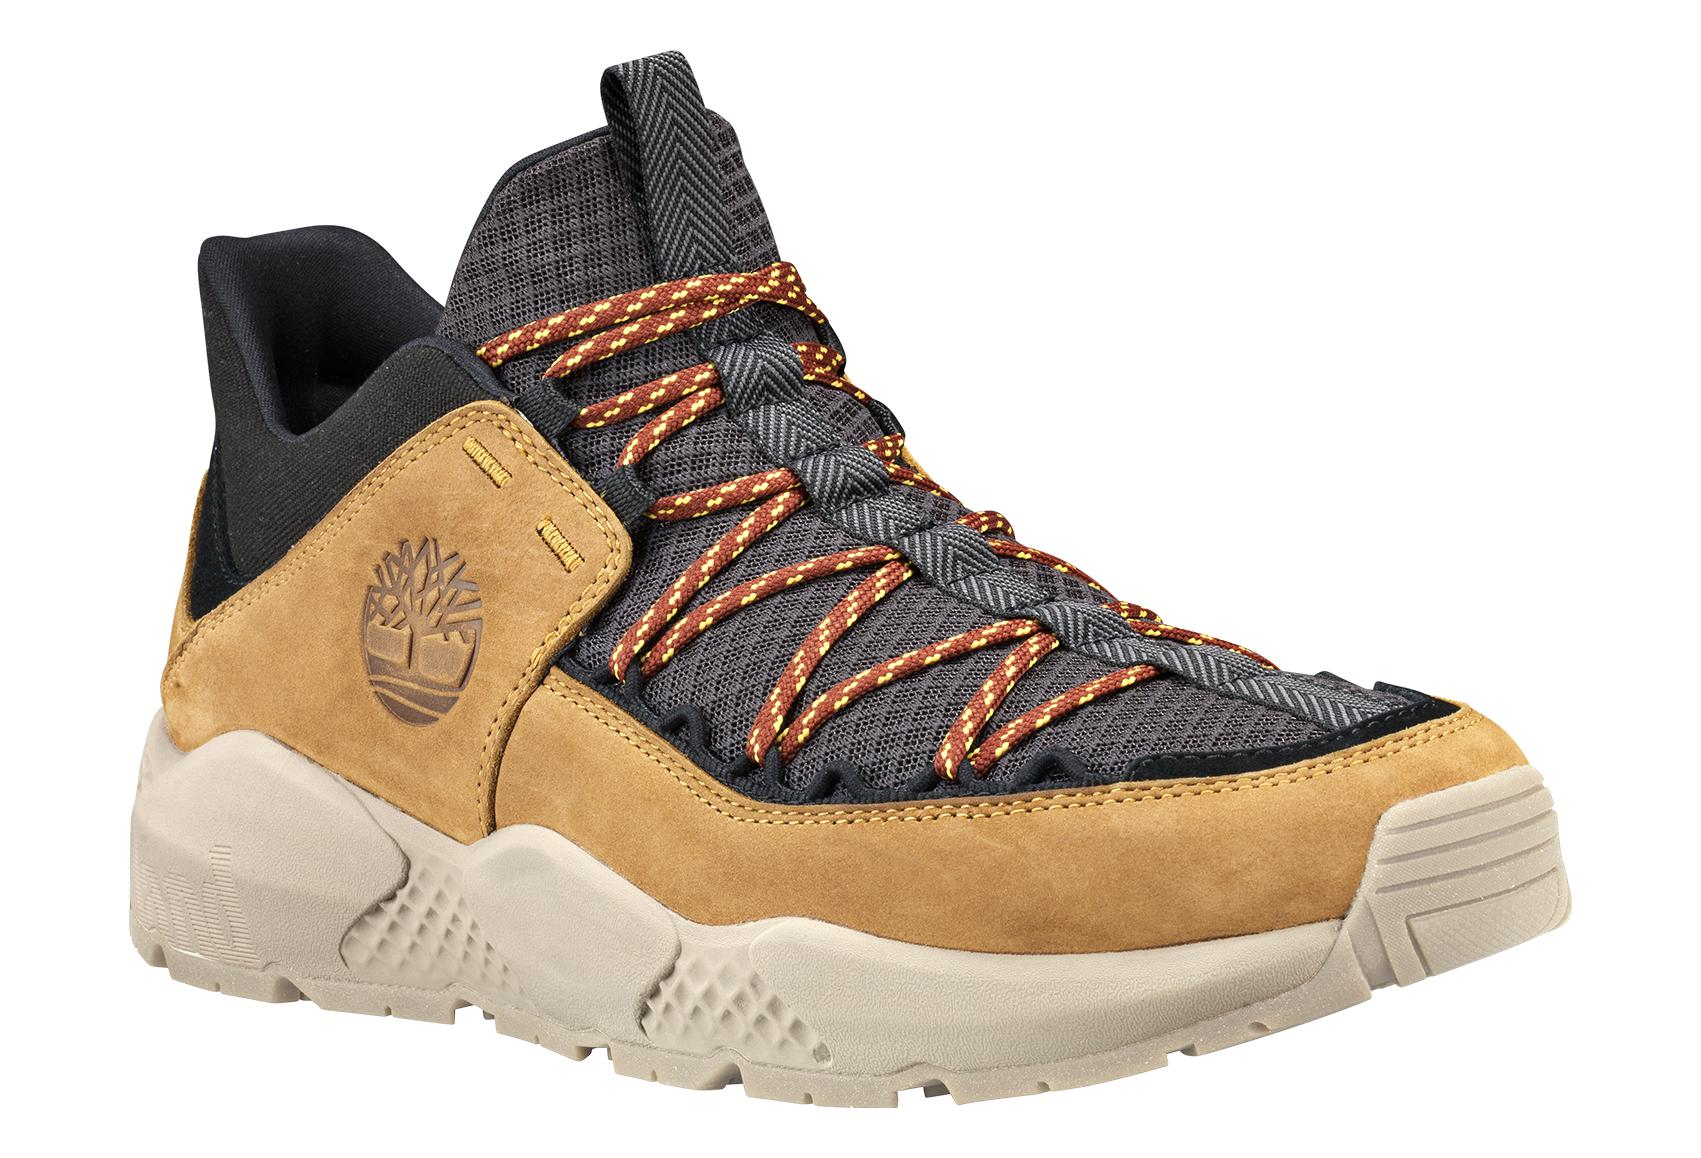 ed905ddbf39 Timberland Shoes Ripcord Low Beige